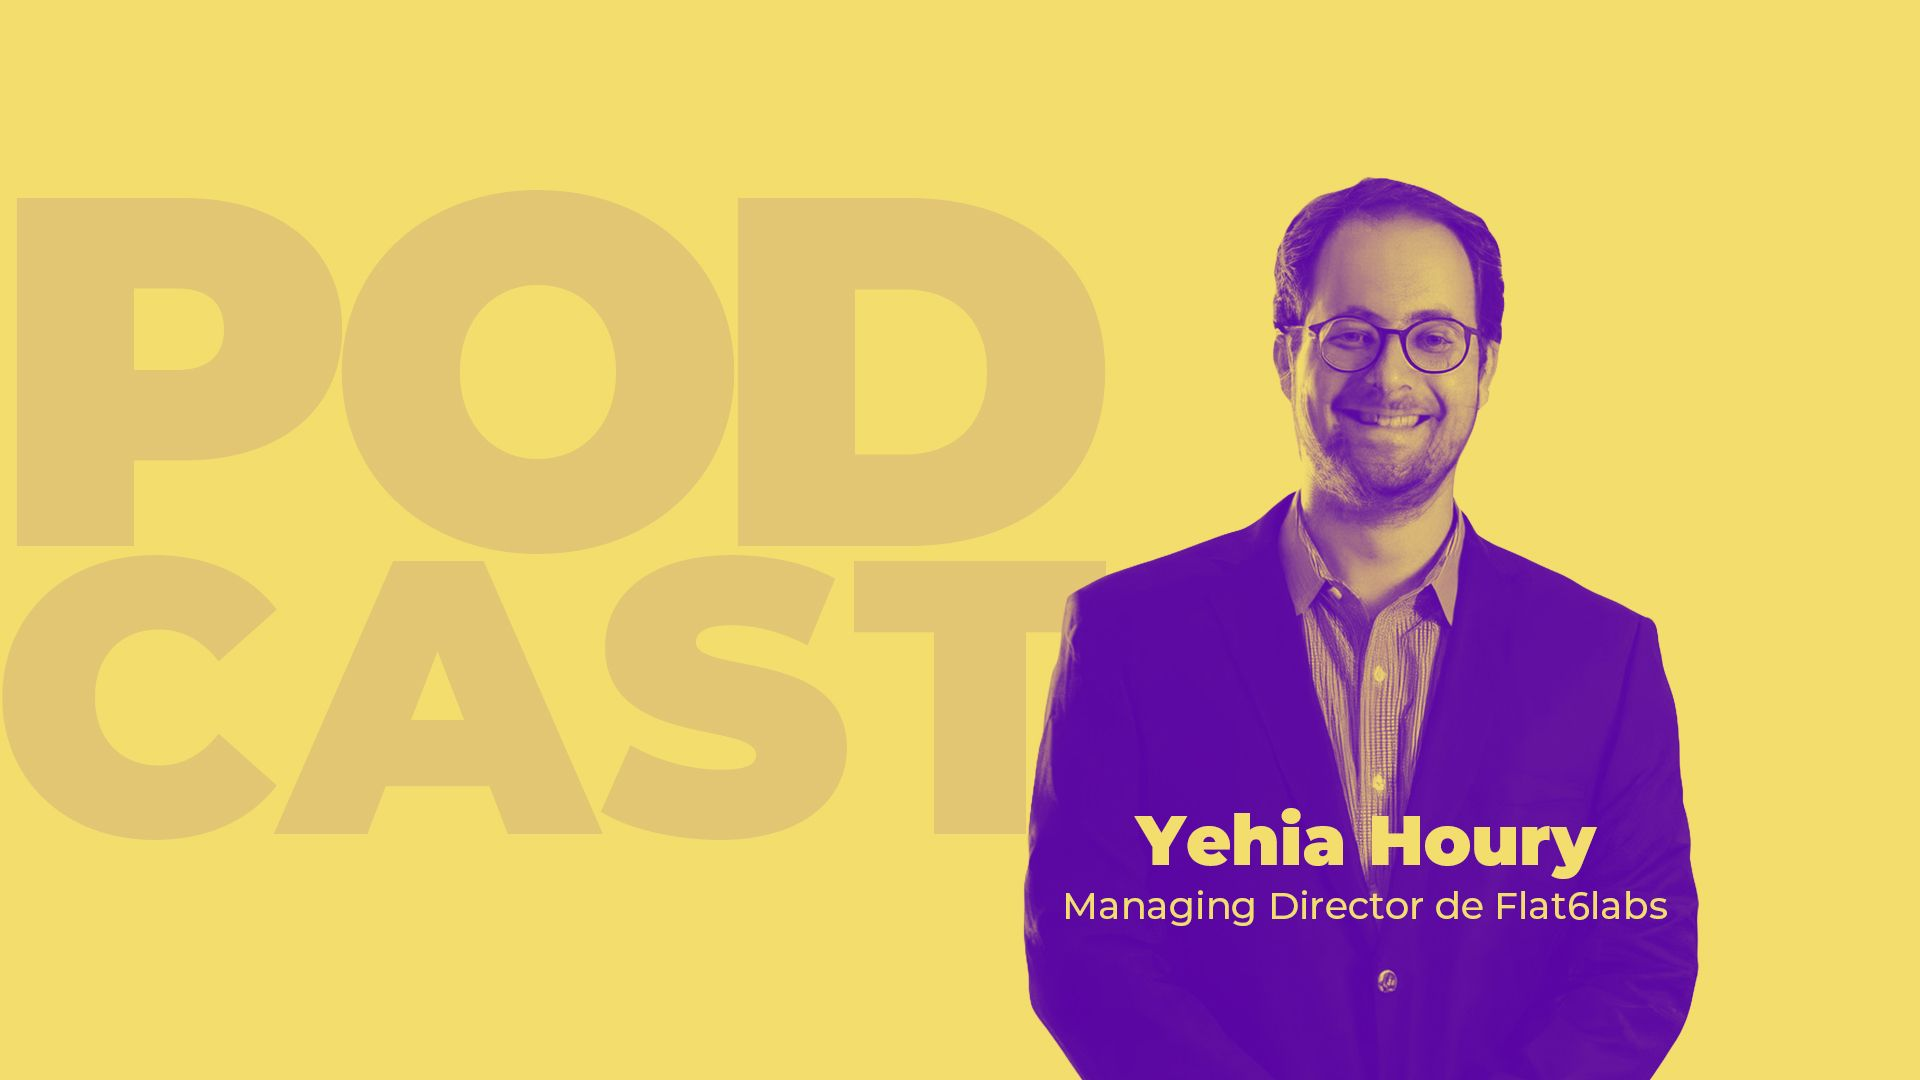 Le Podcast: Yehia Houry - Managing Director de Flat6Labs